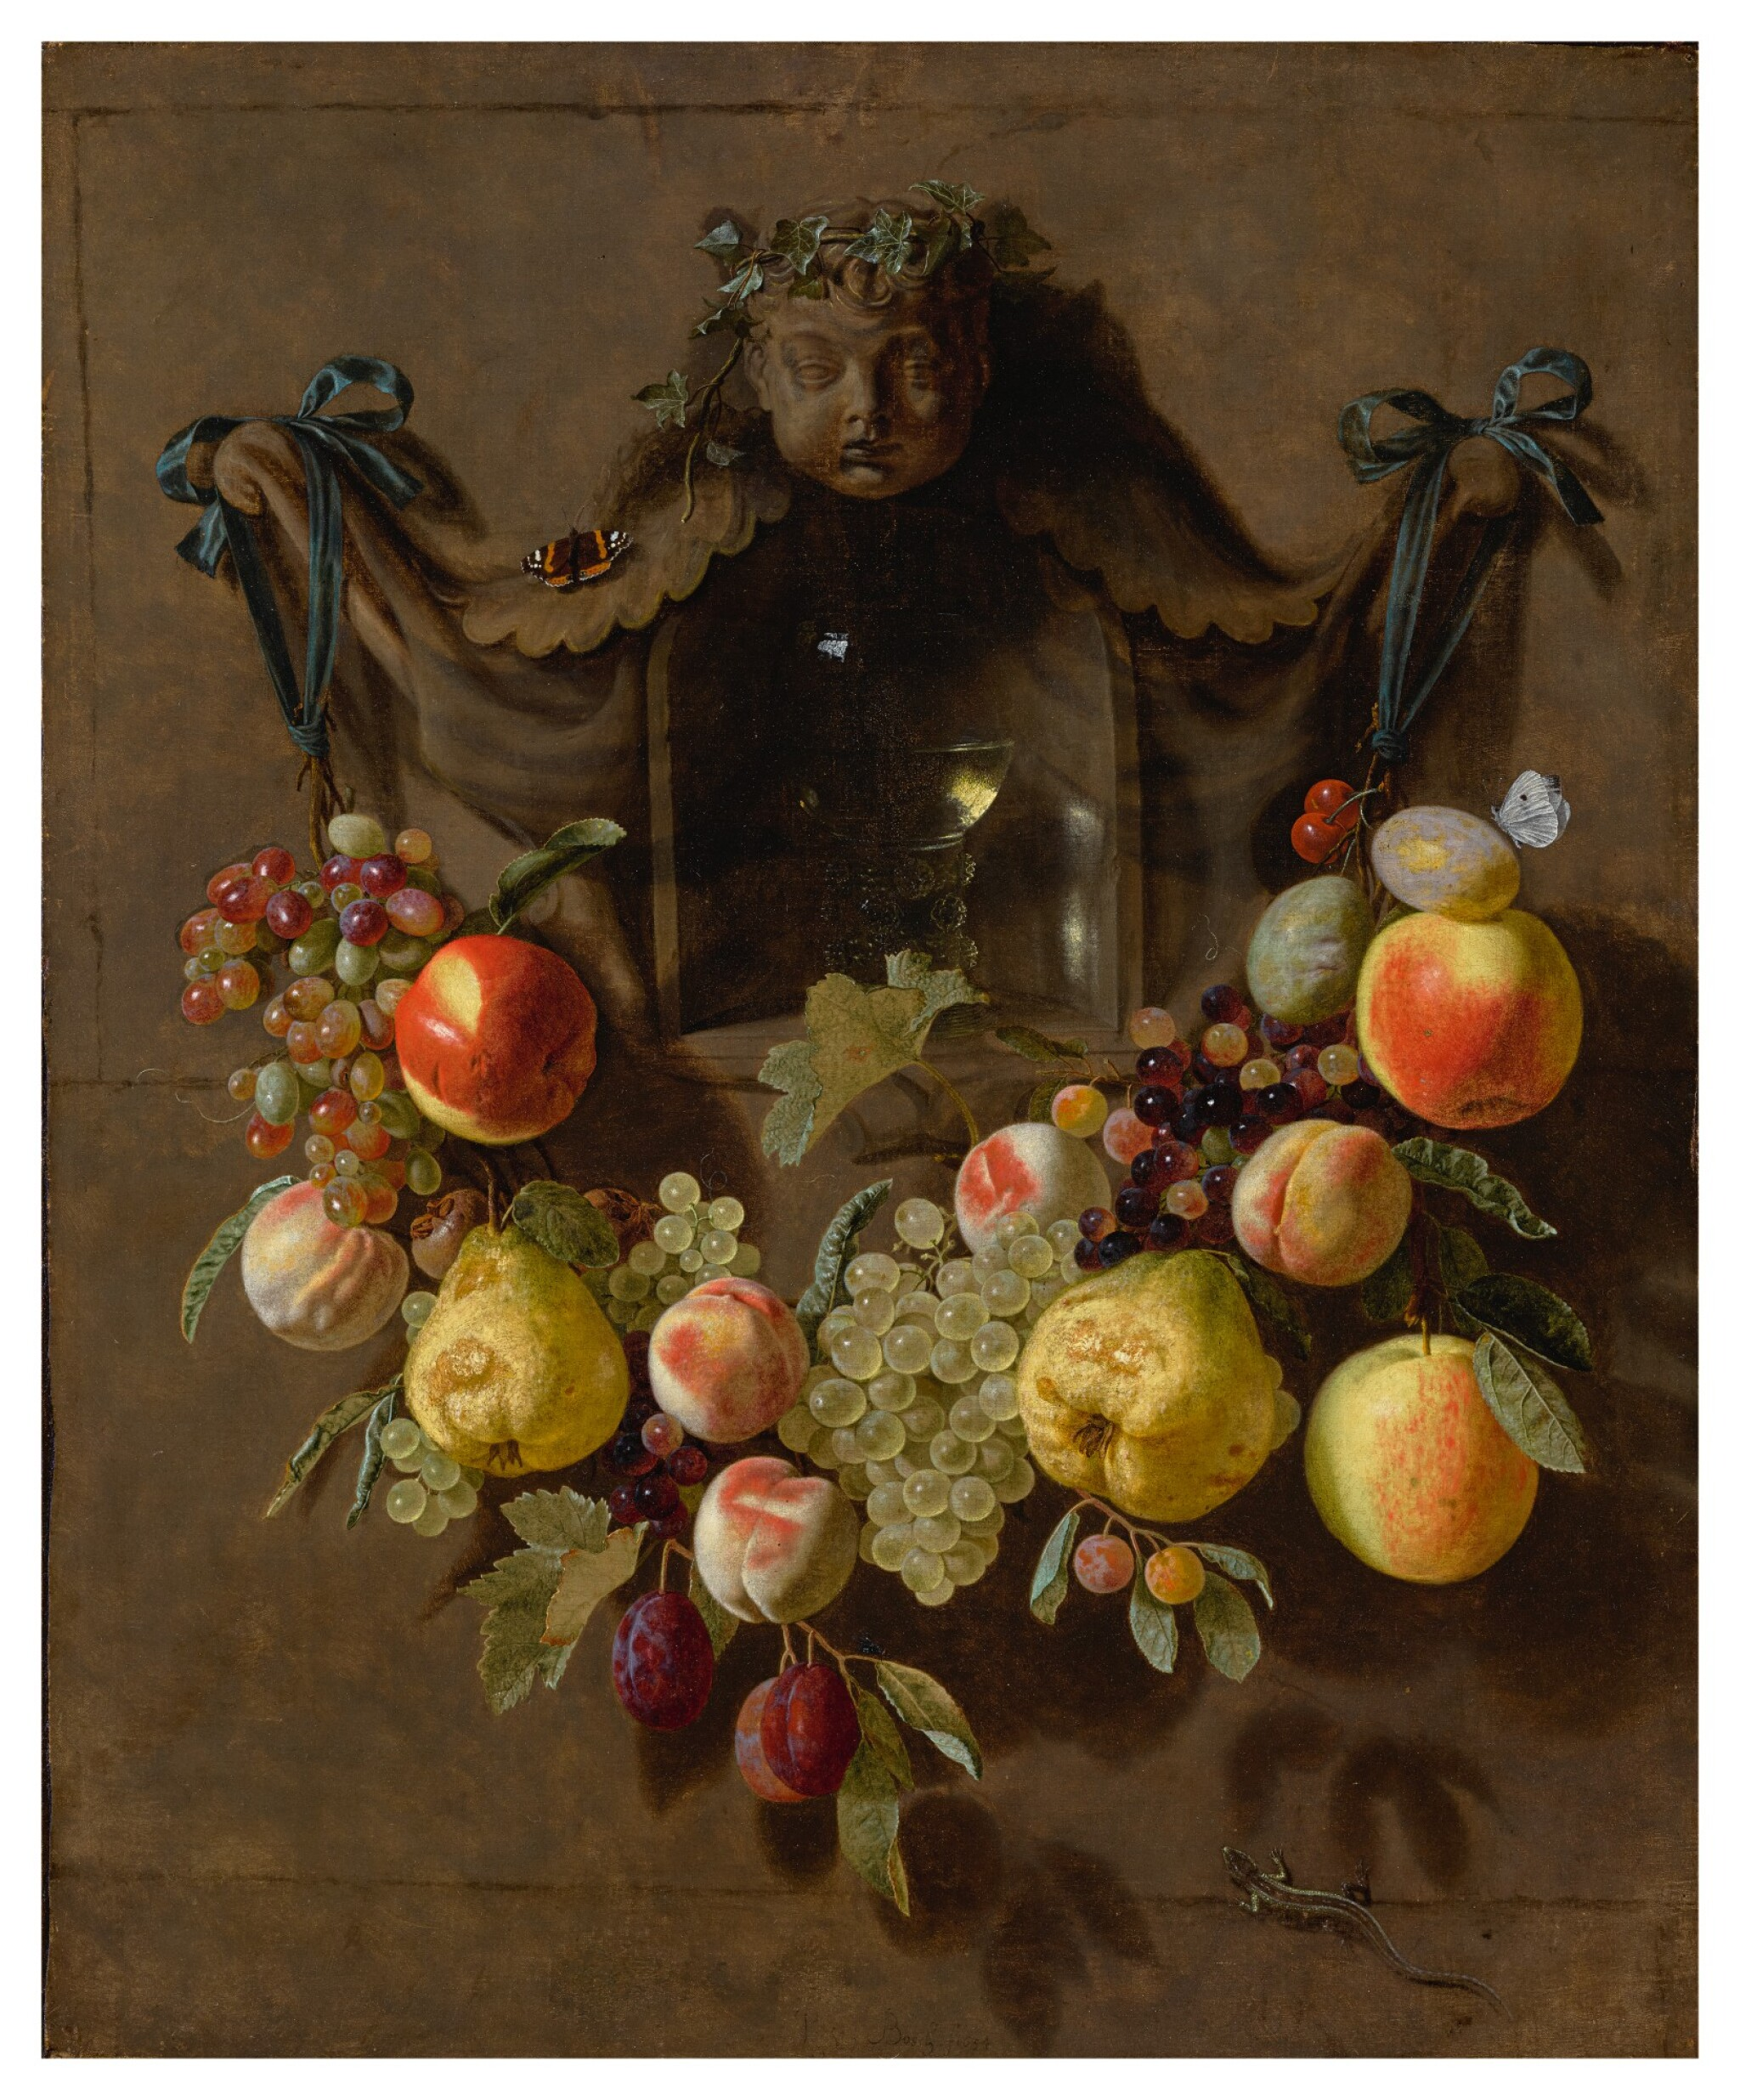 View full screen - View 1 of Lot 86. Sold Without Reserve   PIETER VAN DEN BOSCH THE YOUNGER   A TROMPE L'OEIL STILL LIFE WITH A SWAG OF GRAPES, PEARS, PEACHES, APPLES, PLUMS, AND BUTTERFLIES DECORATING A NICHE WITH A GLASS ROEMER.